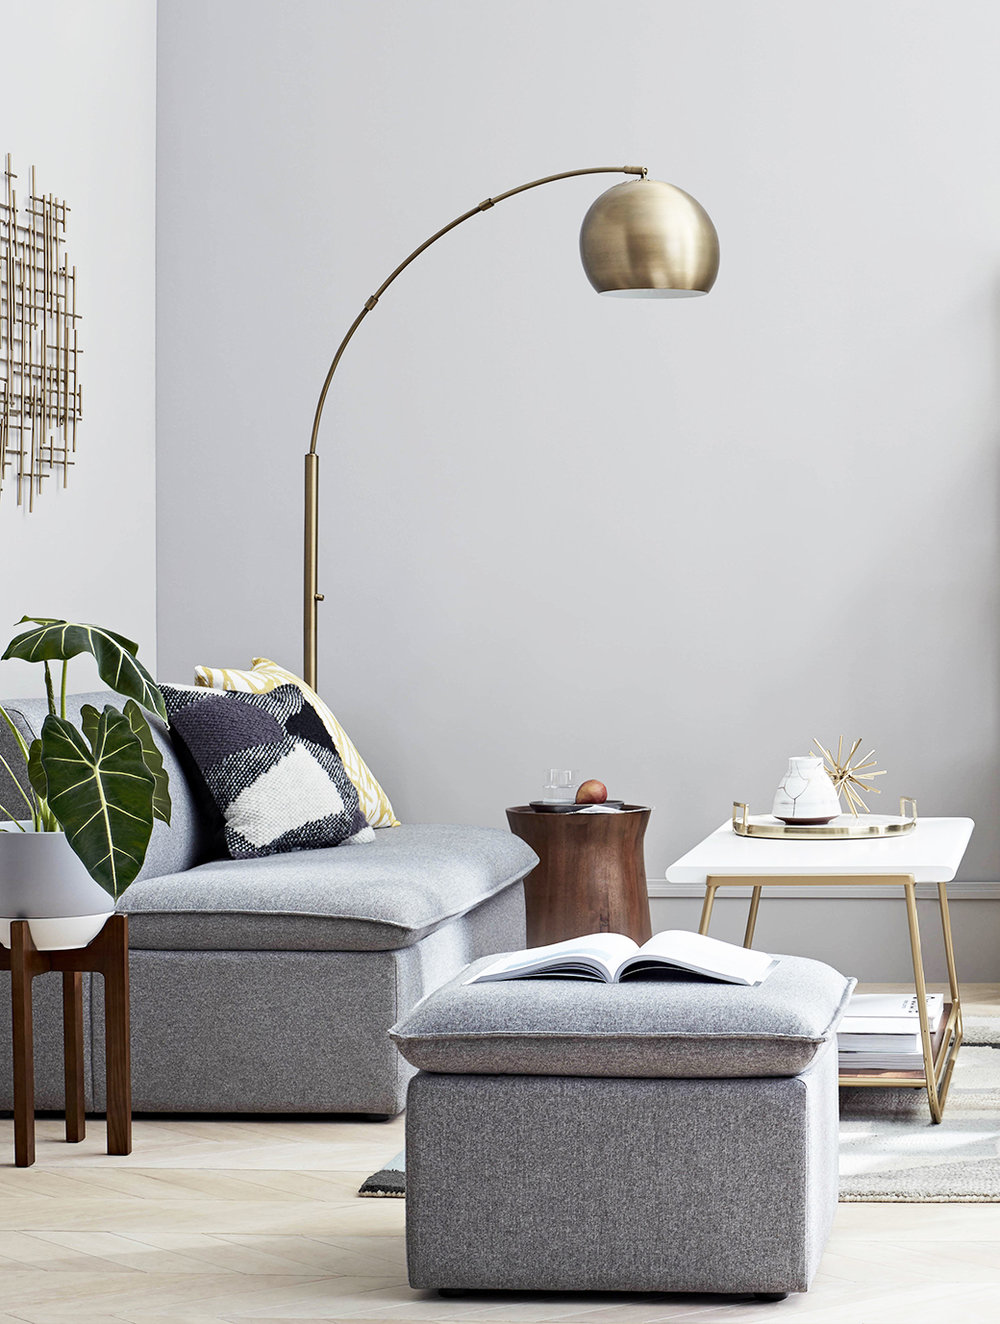 Grey modular sofa and ottoman, Arc Globe floor lamp, Sayer coffee table.